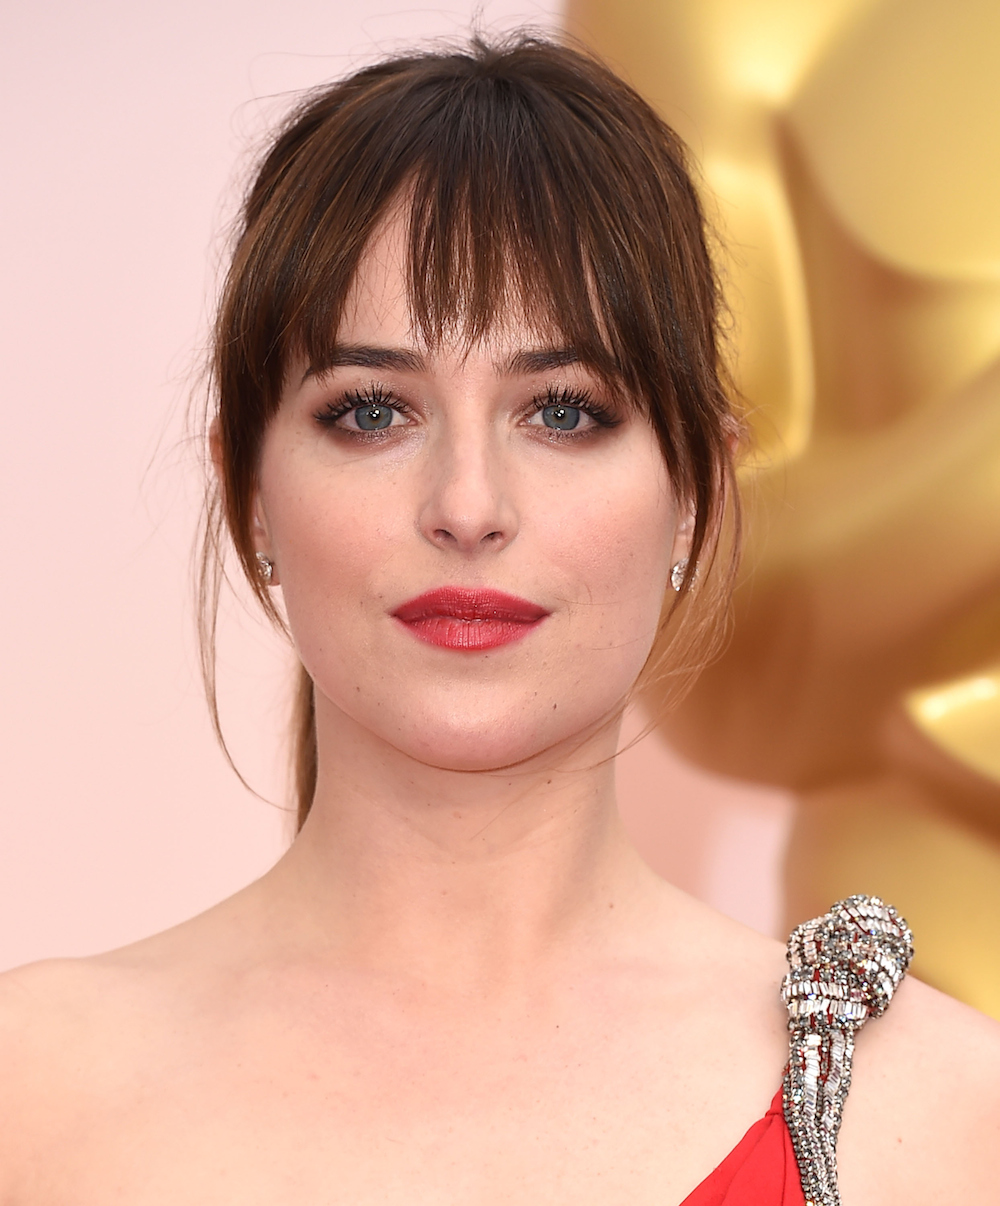 HOLLYWOOD, CA - FEBRUARY 22: Dakota Johnson arrives at the 87th Annual Academy Awards at Hollywood & Highland Center on February 22, 2015 in Hollywood, California. (Photo by Steve Granitz/WireImage)